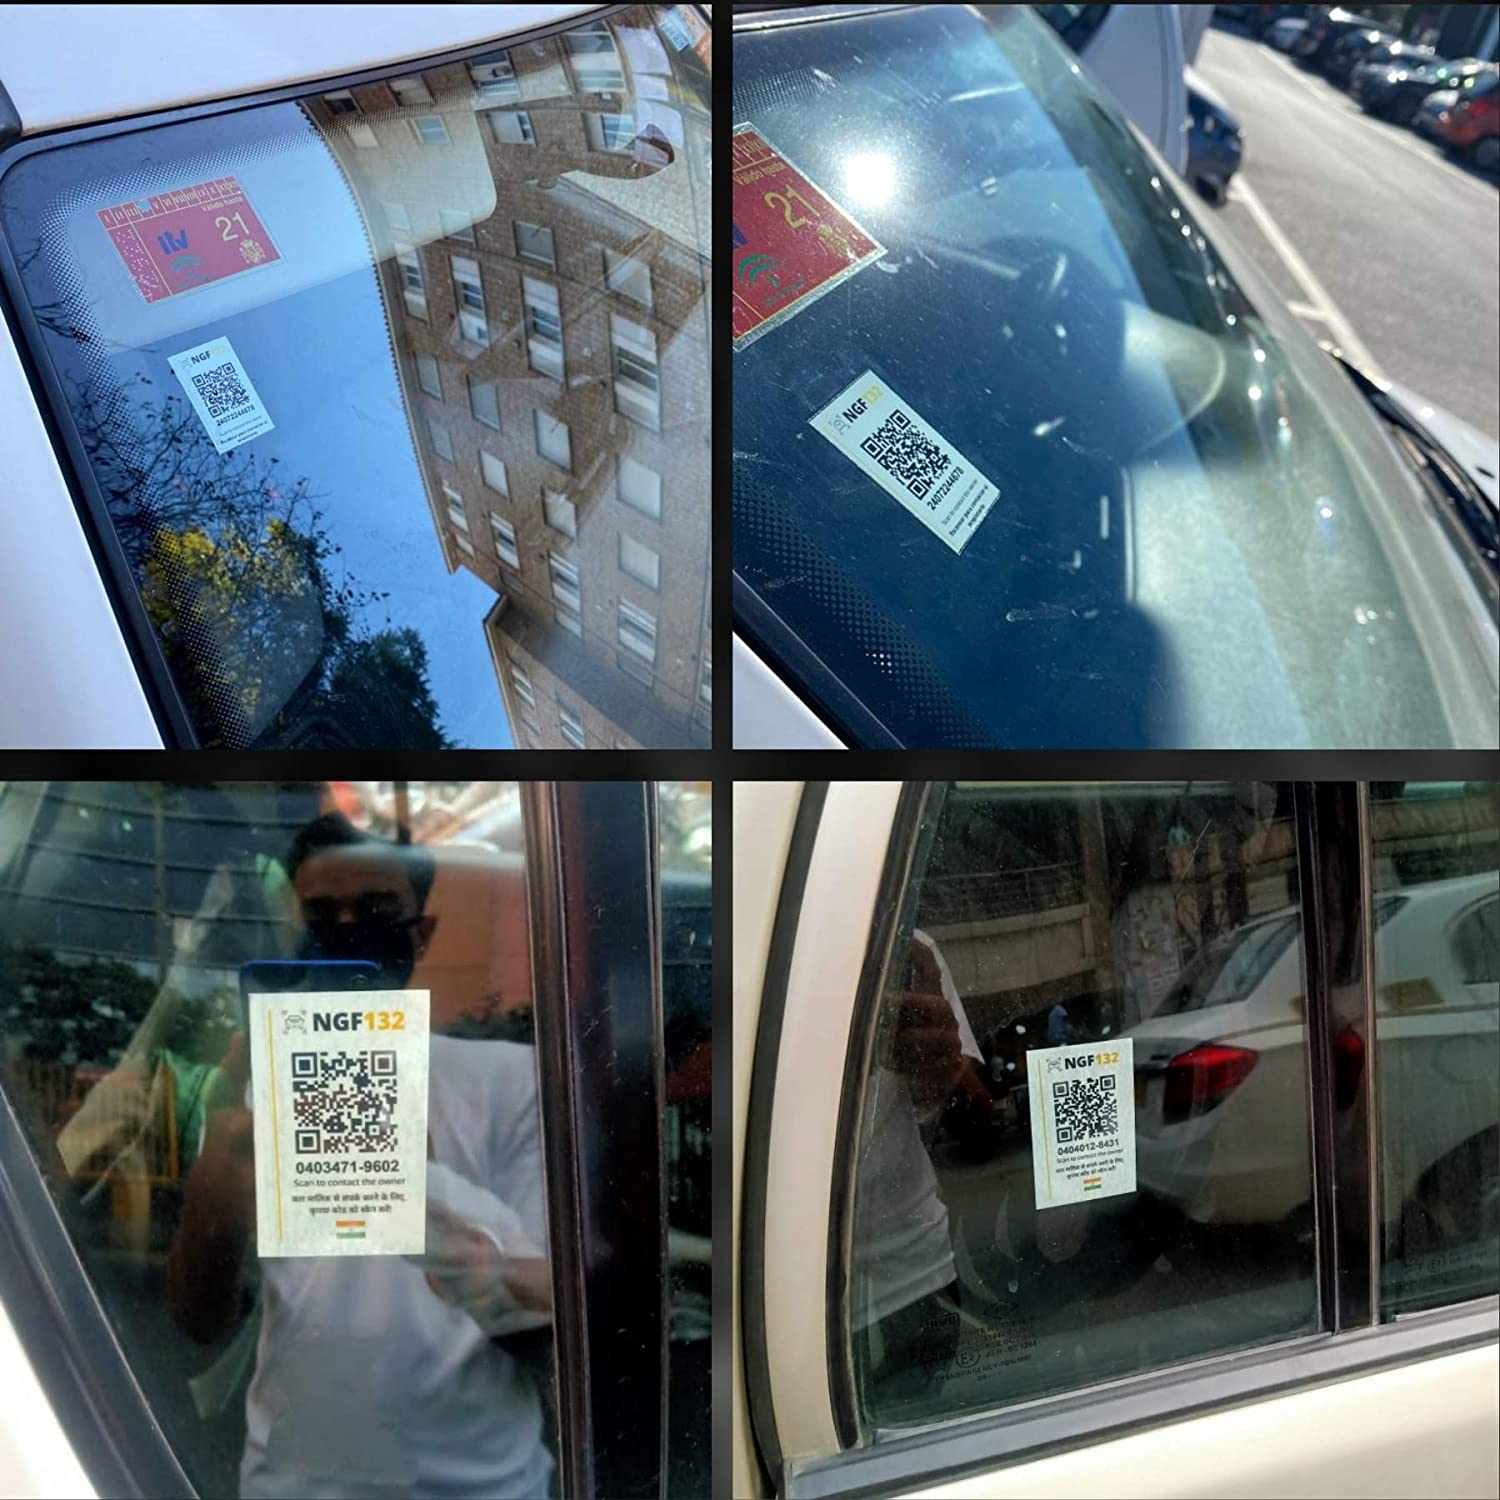 NGF132 Contact Stickers for Car and Bike Owners. People can Send You SMS  Without Getting Your Phone Number. 2 Car +1 Bike Stickers.: Amazon.in: Car  & Motorbike